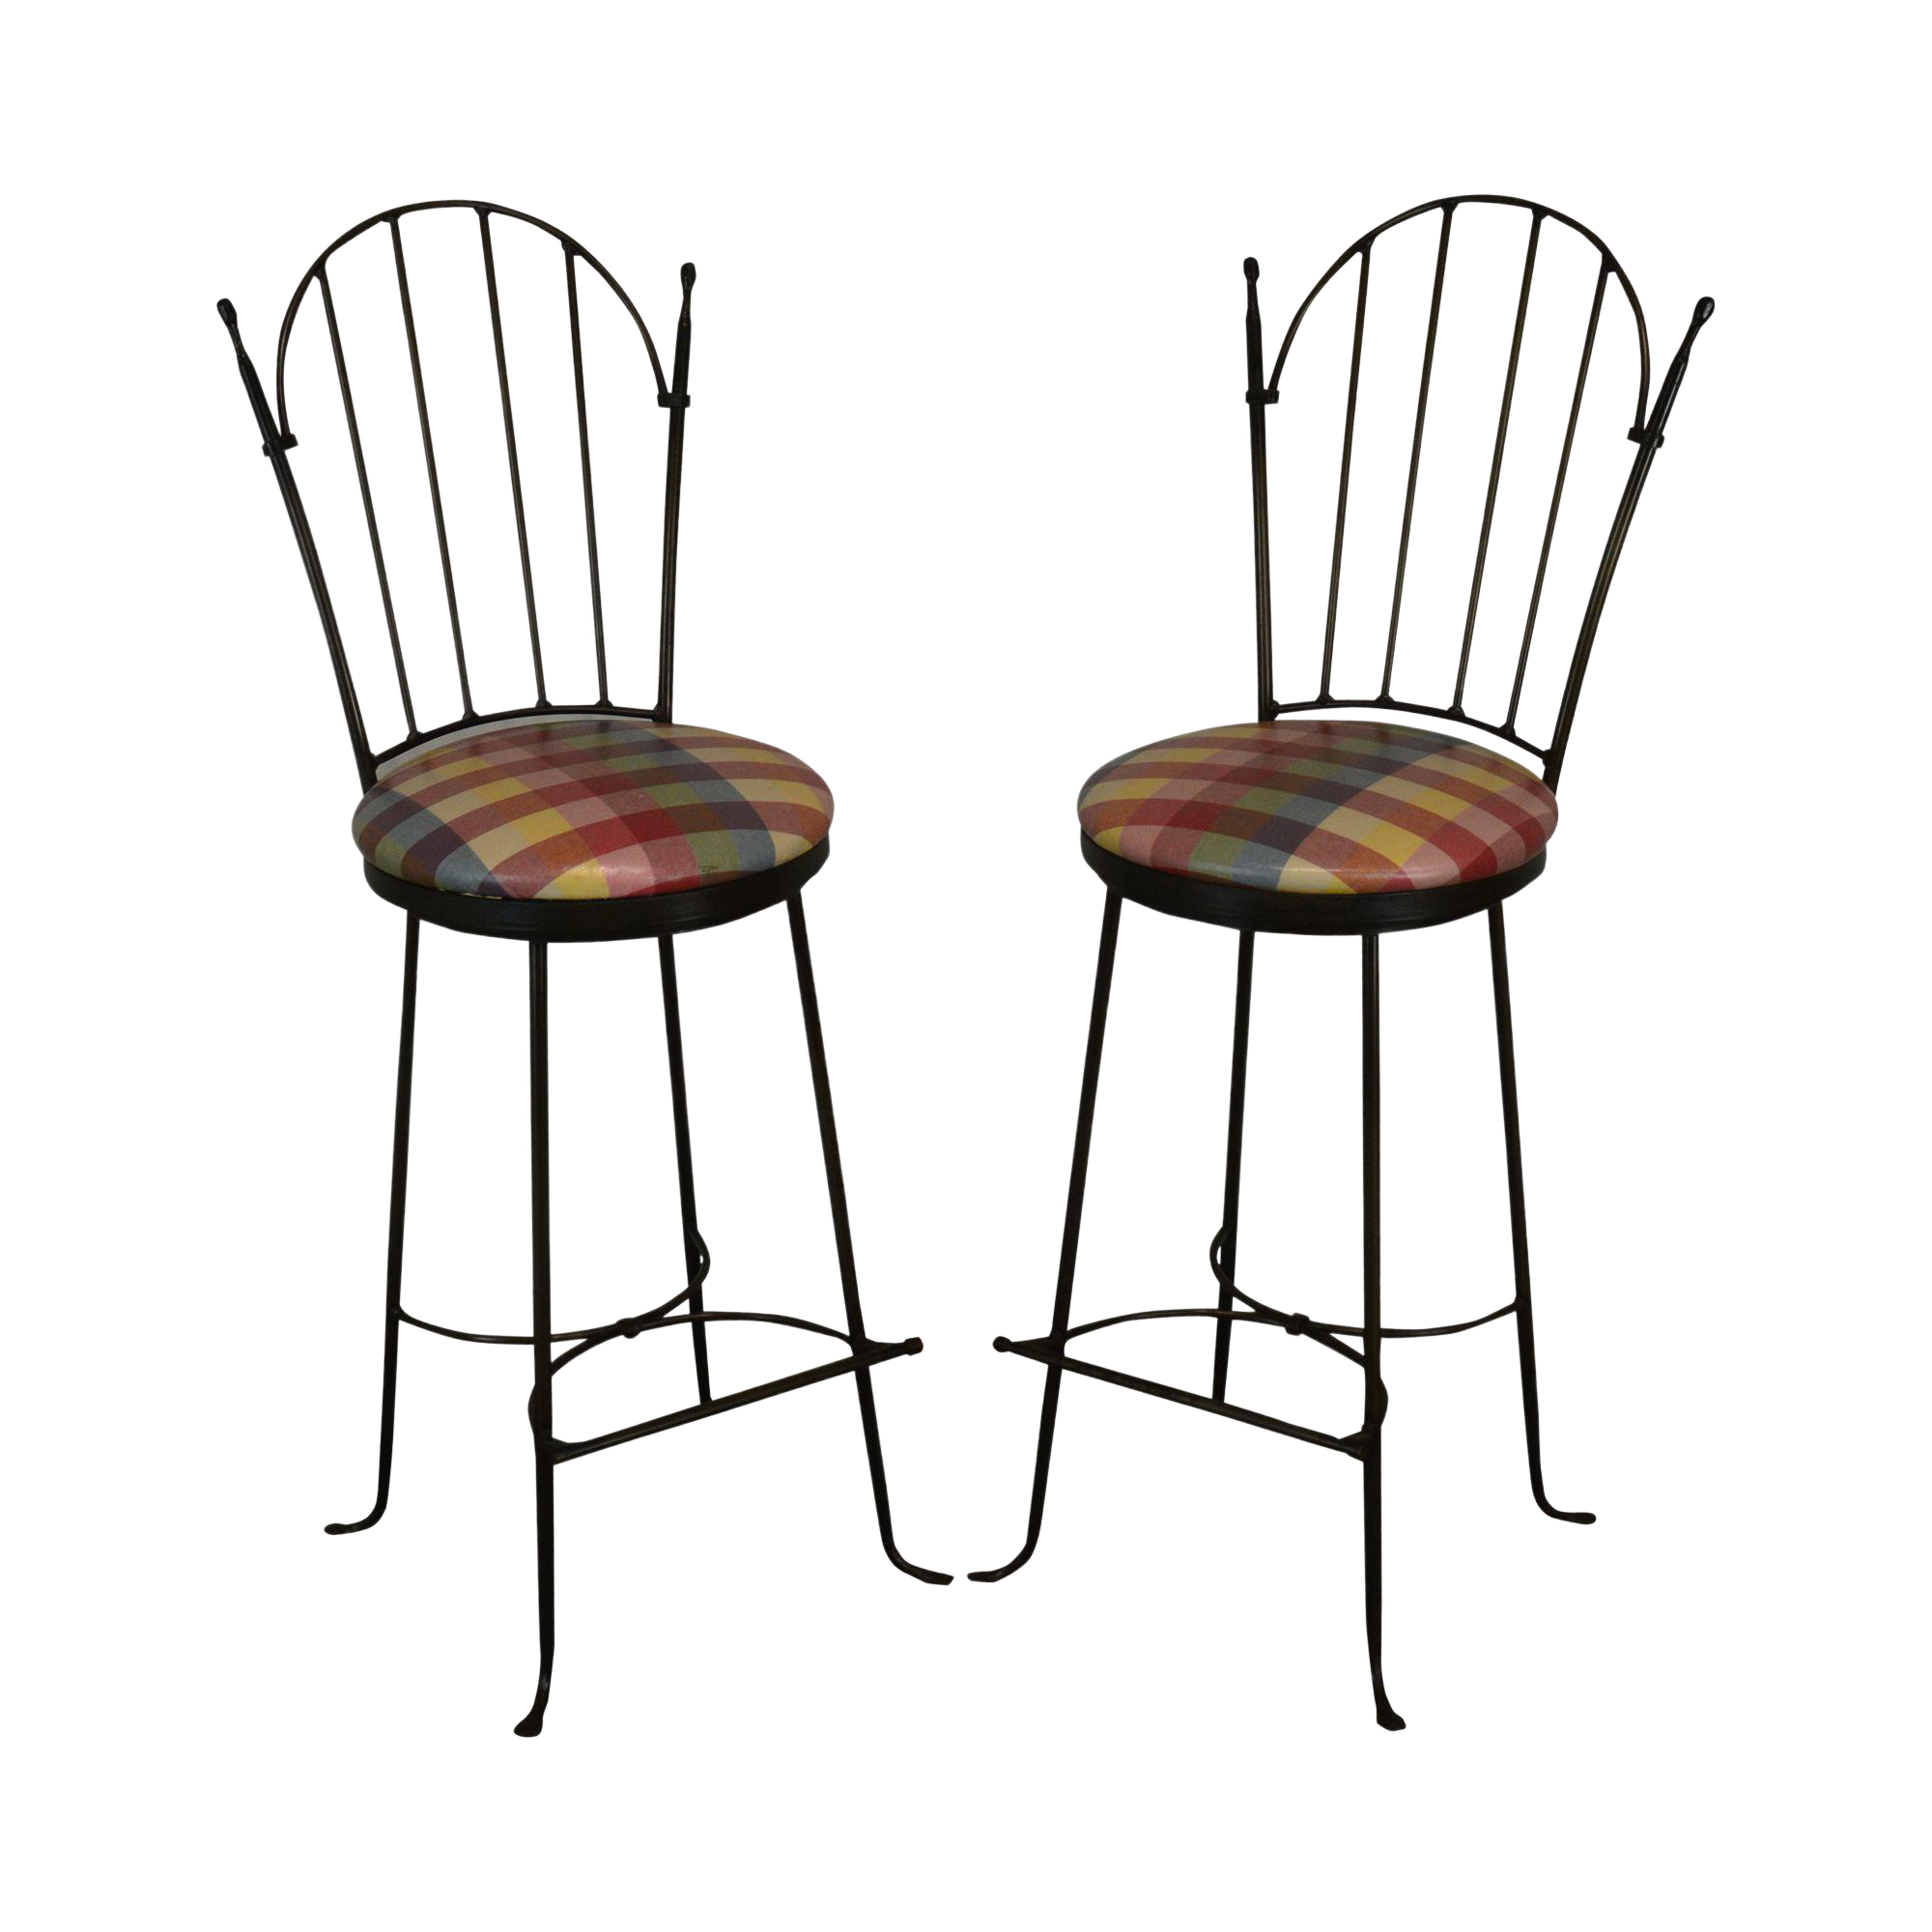 Awe Inspiring Charleston Forge Shaker Arch Pair Iron Swivel Bar Stools Caraccident5 Cool Chair Designs And Ideas Caraccident5Info